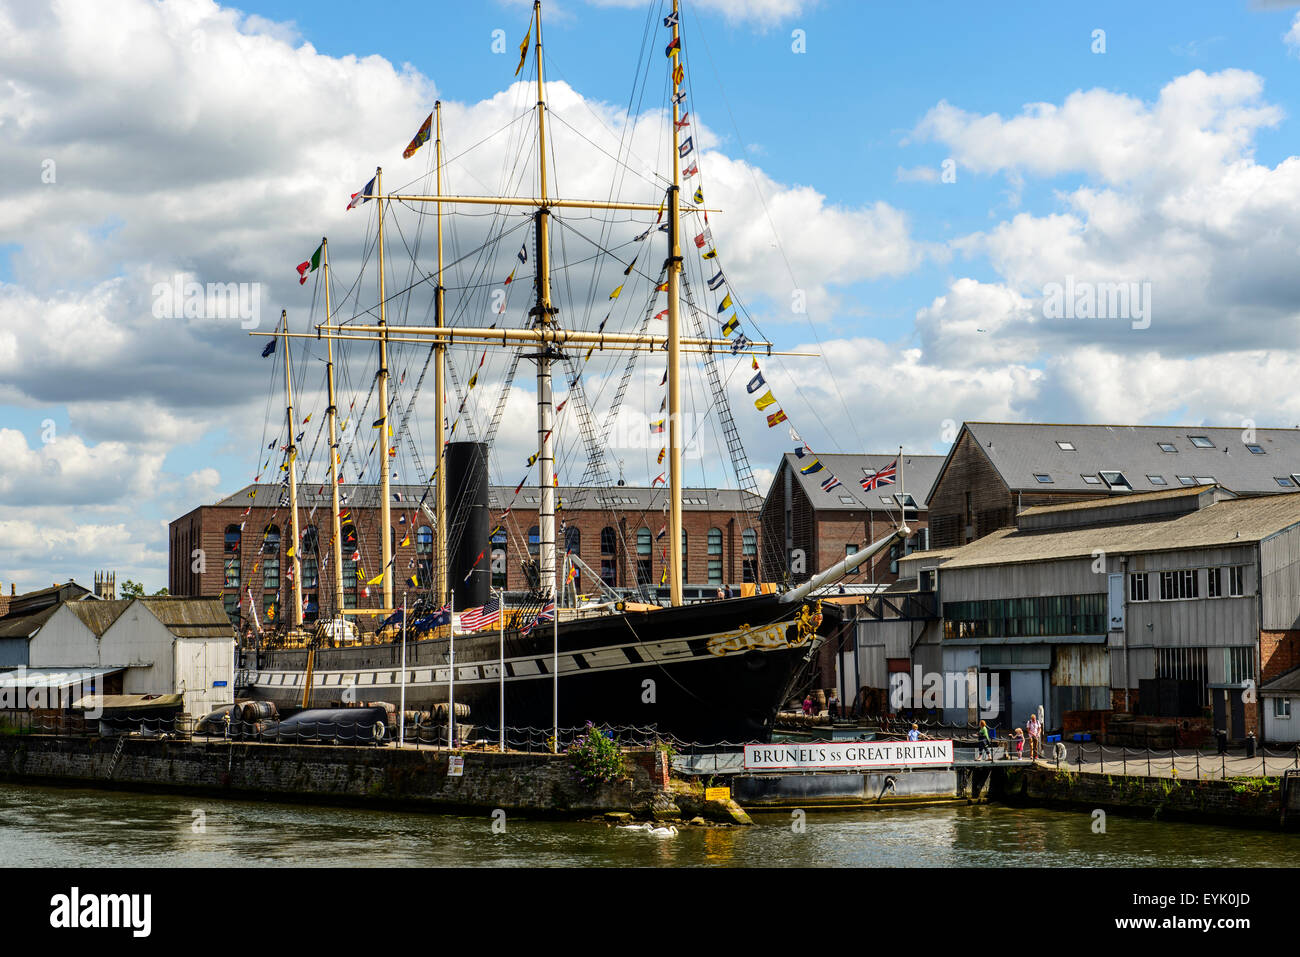 SS Great Britain in its dock at Bristol Harbour - Stock Image